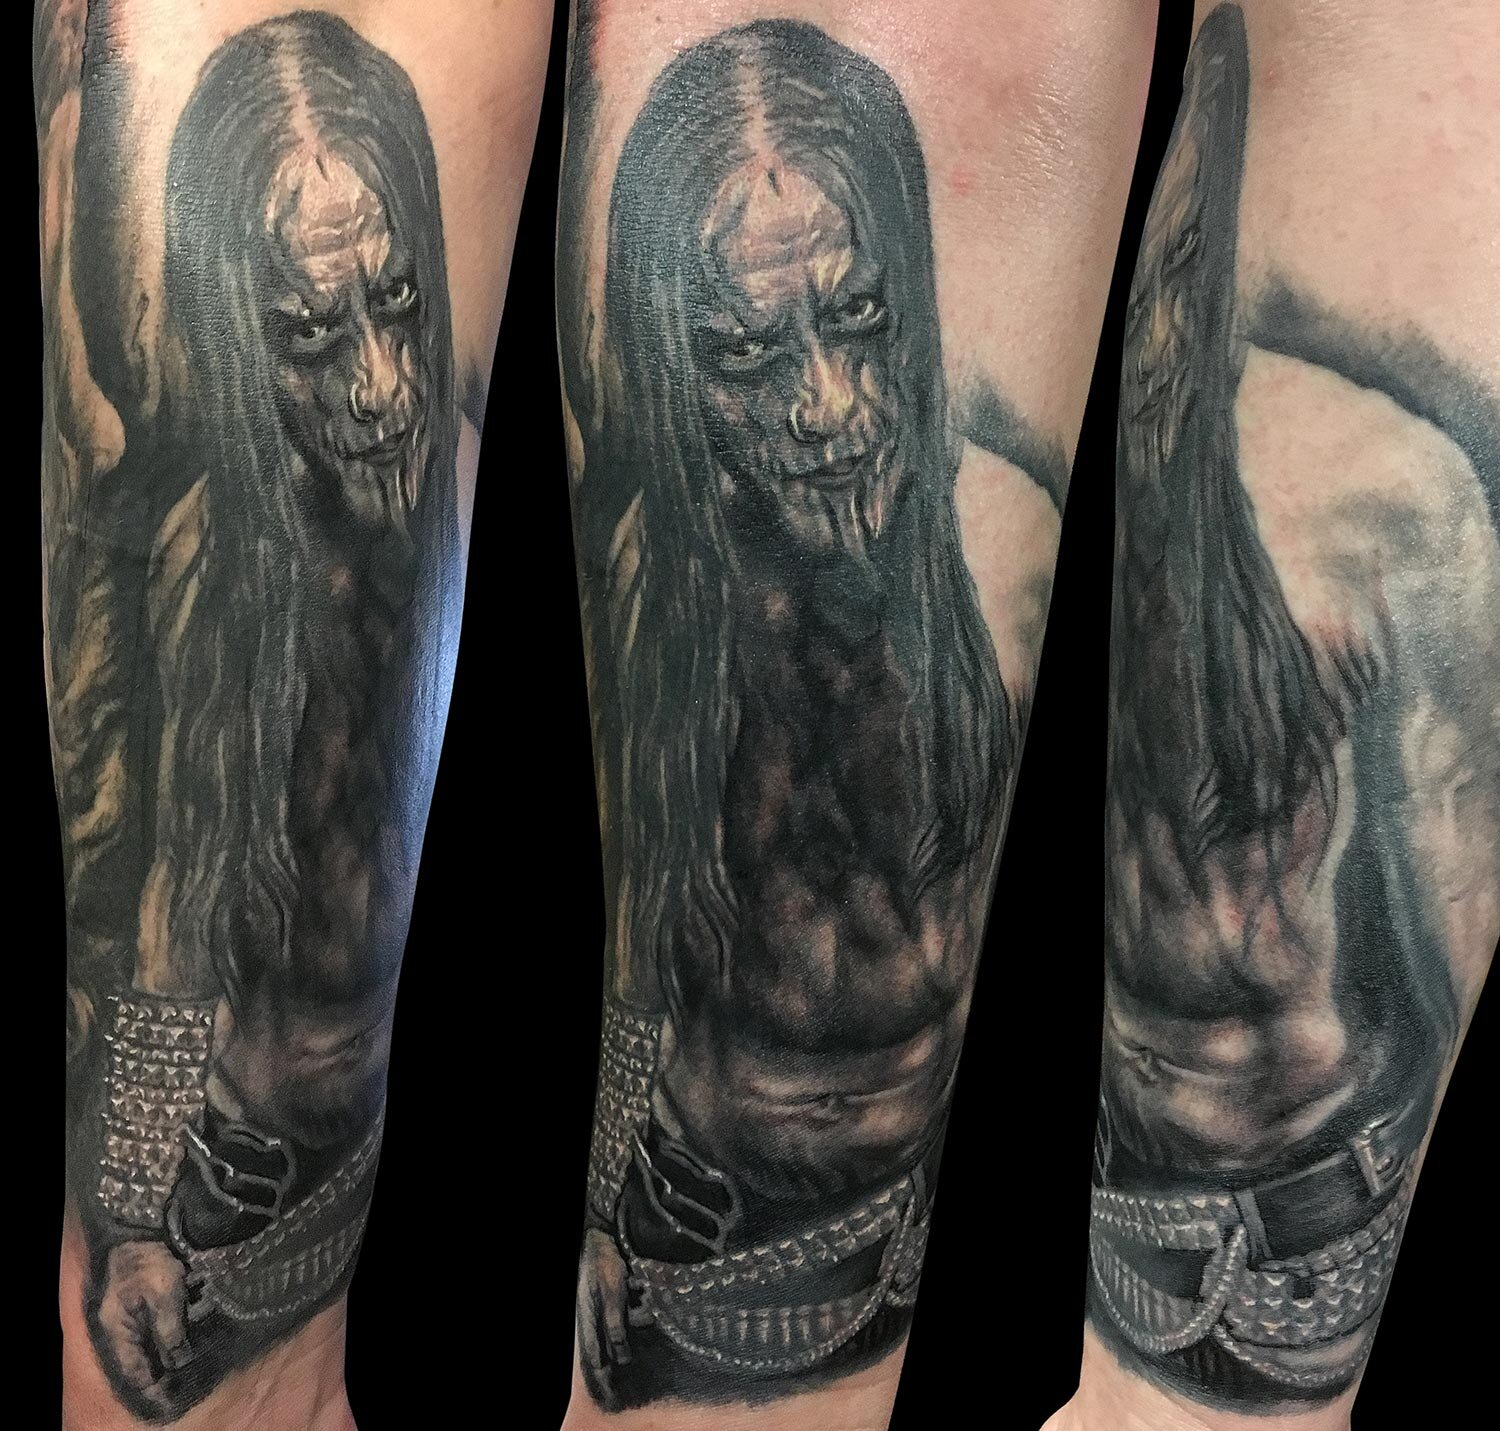 Black and Grey Frost Corpsepaint Portrait Tattoo (part fresh part healed)